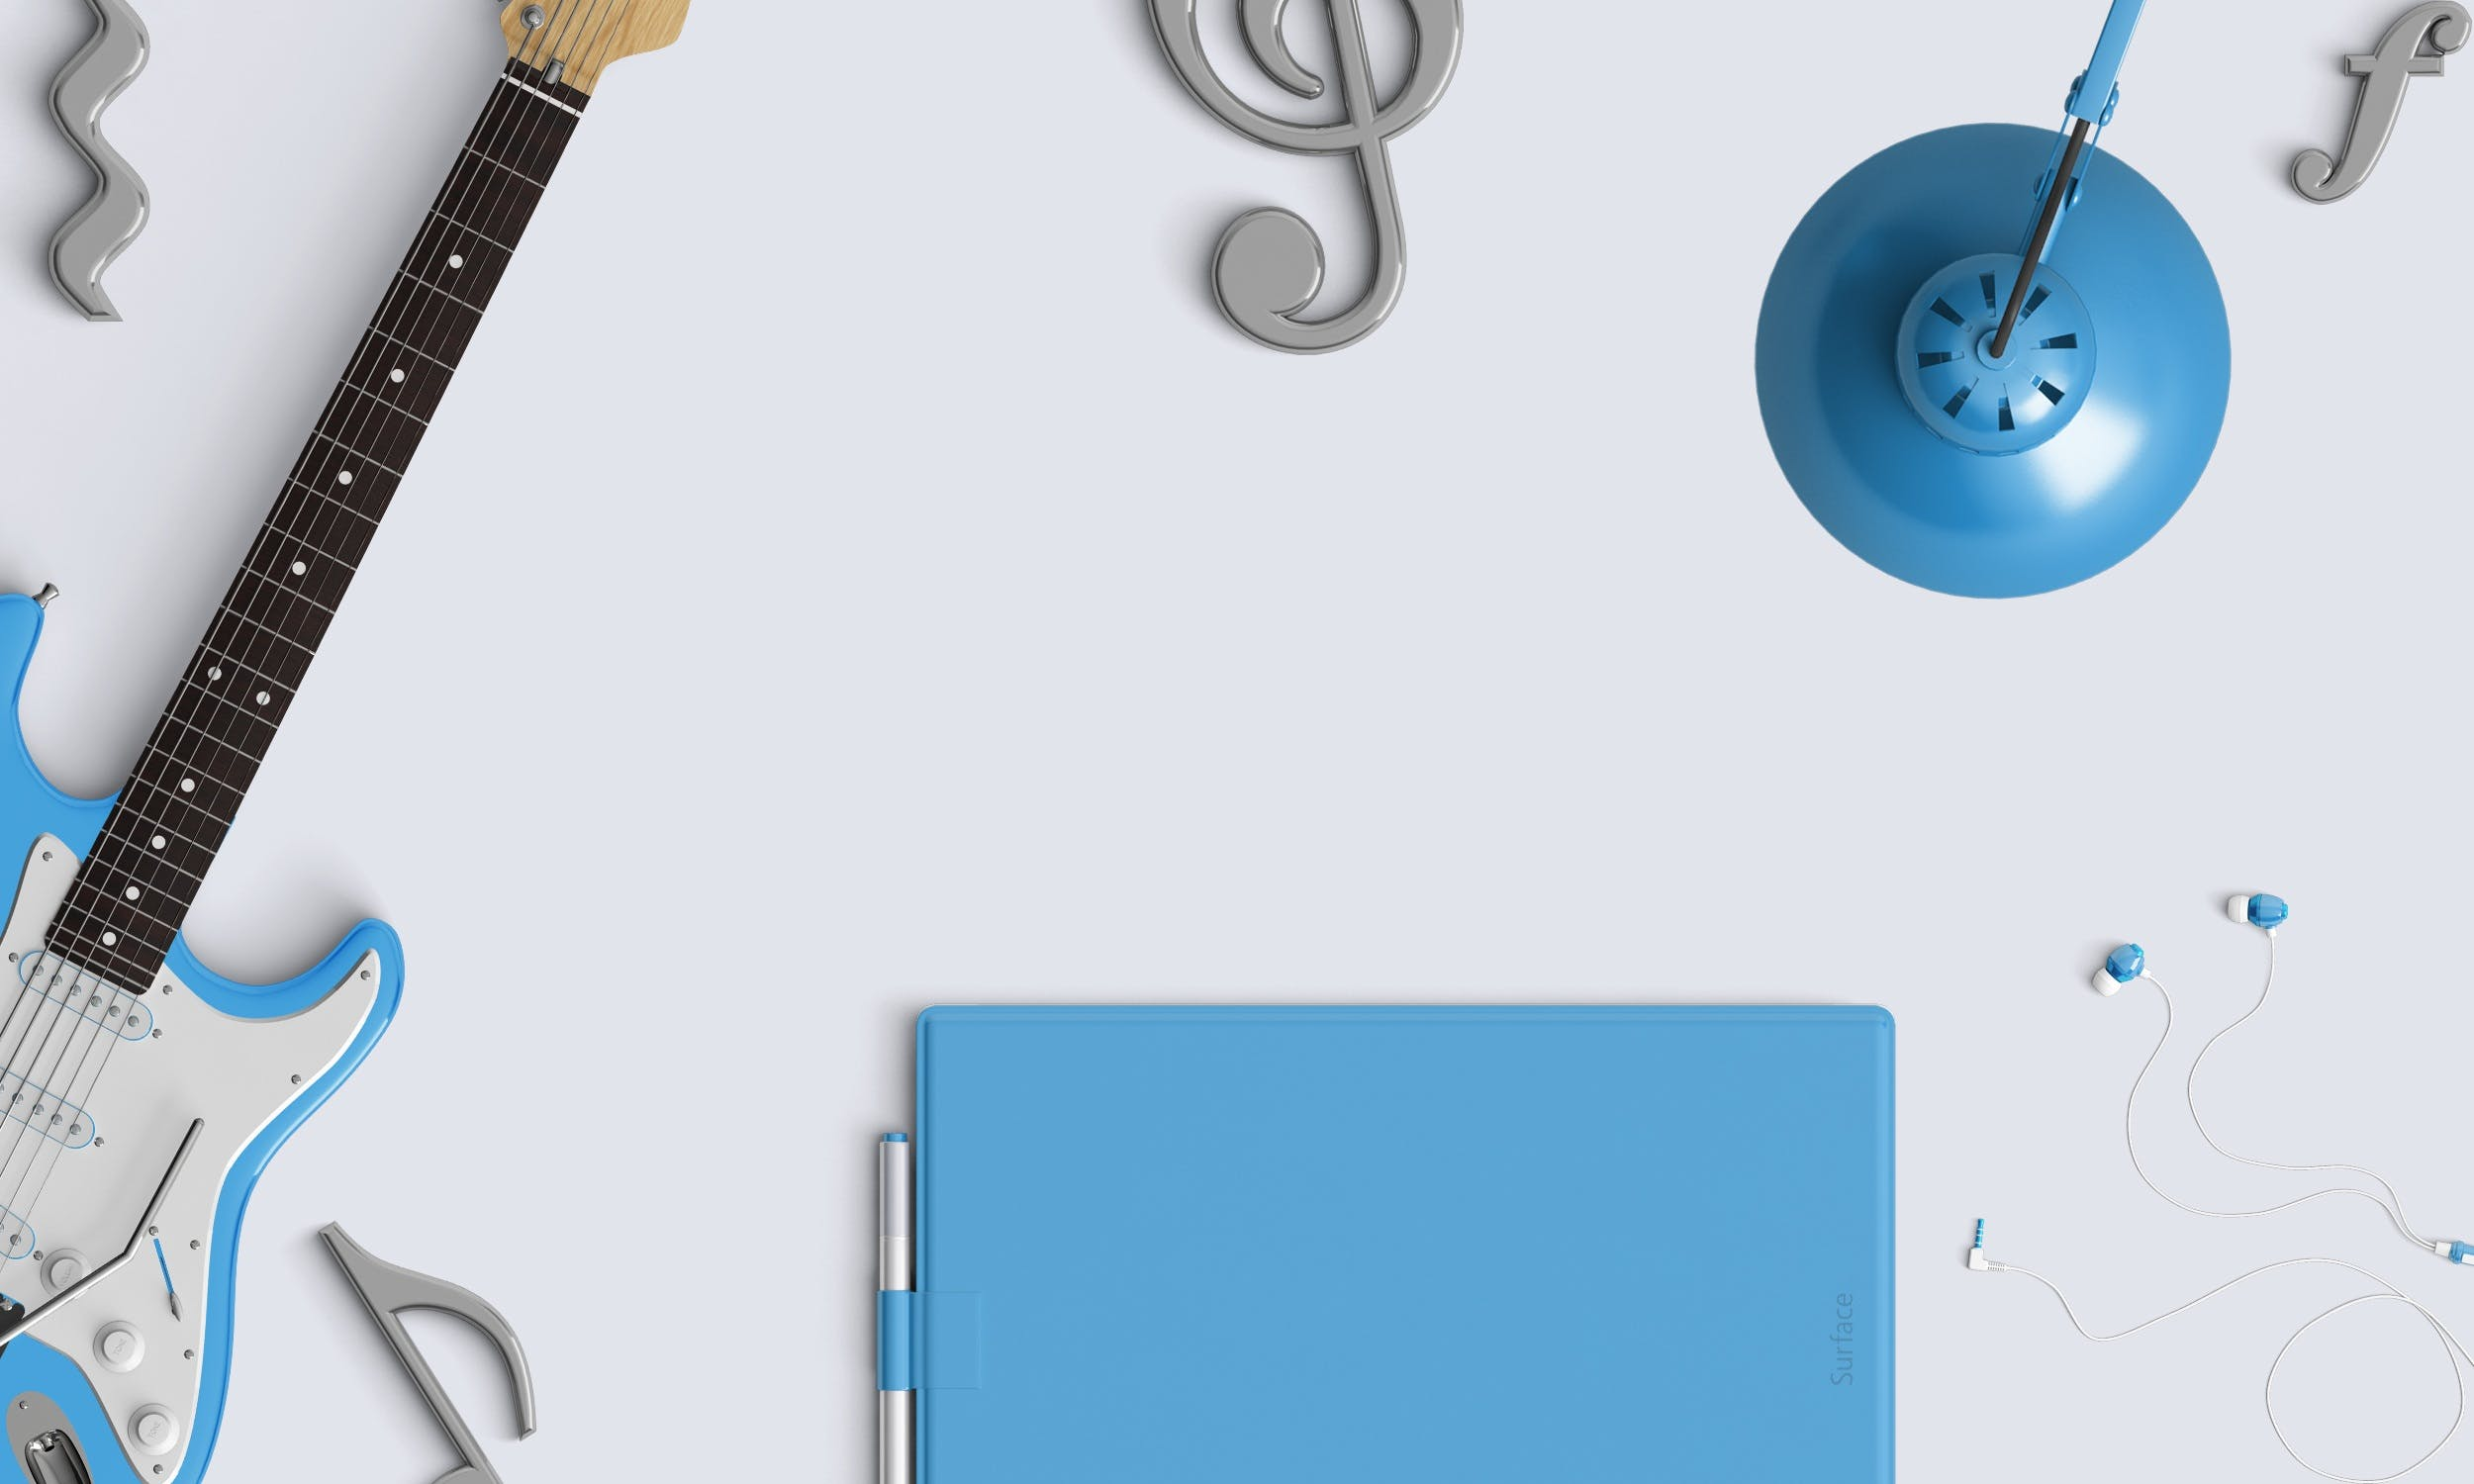 White Skyblue Electric Guitar and Other Blue Materials Wall Decor